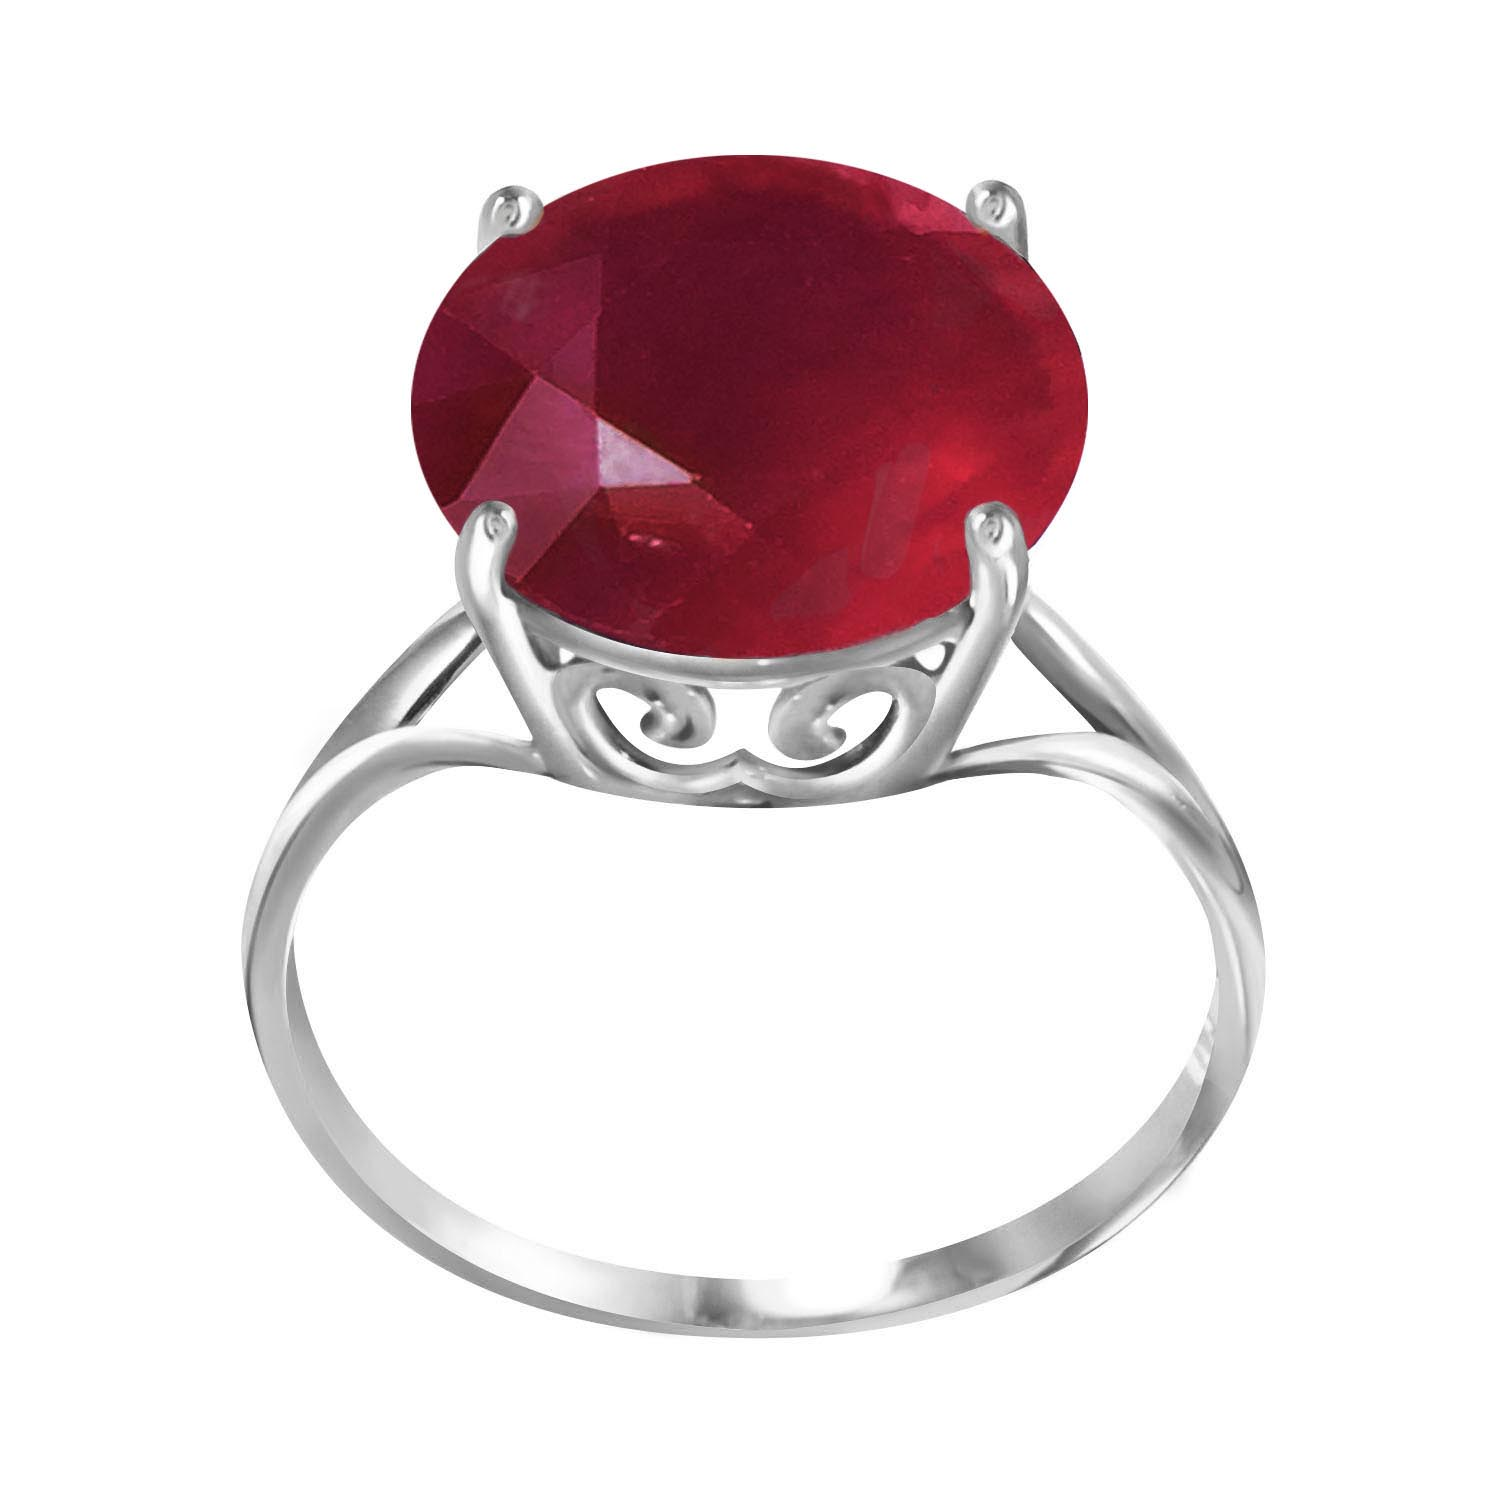 Round Cut Ruby Ring 8.5 ct in 18ct White Gold